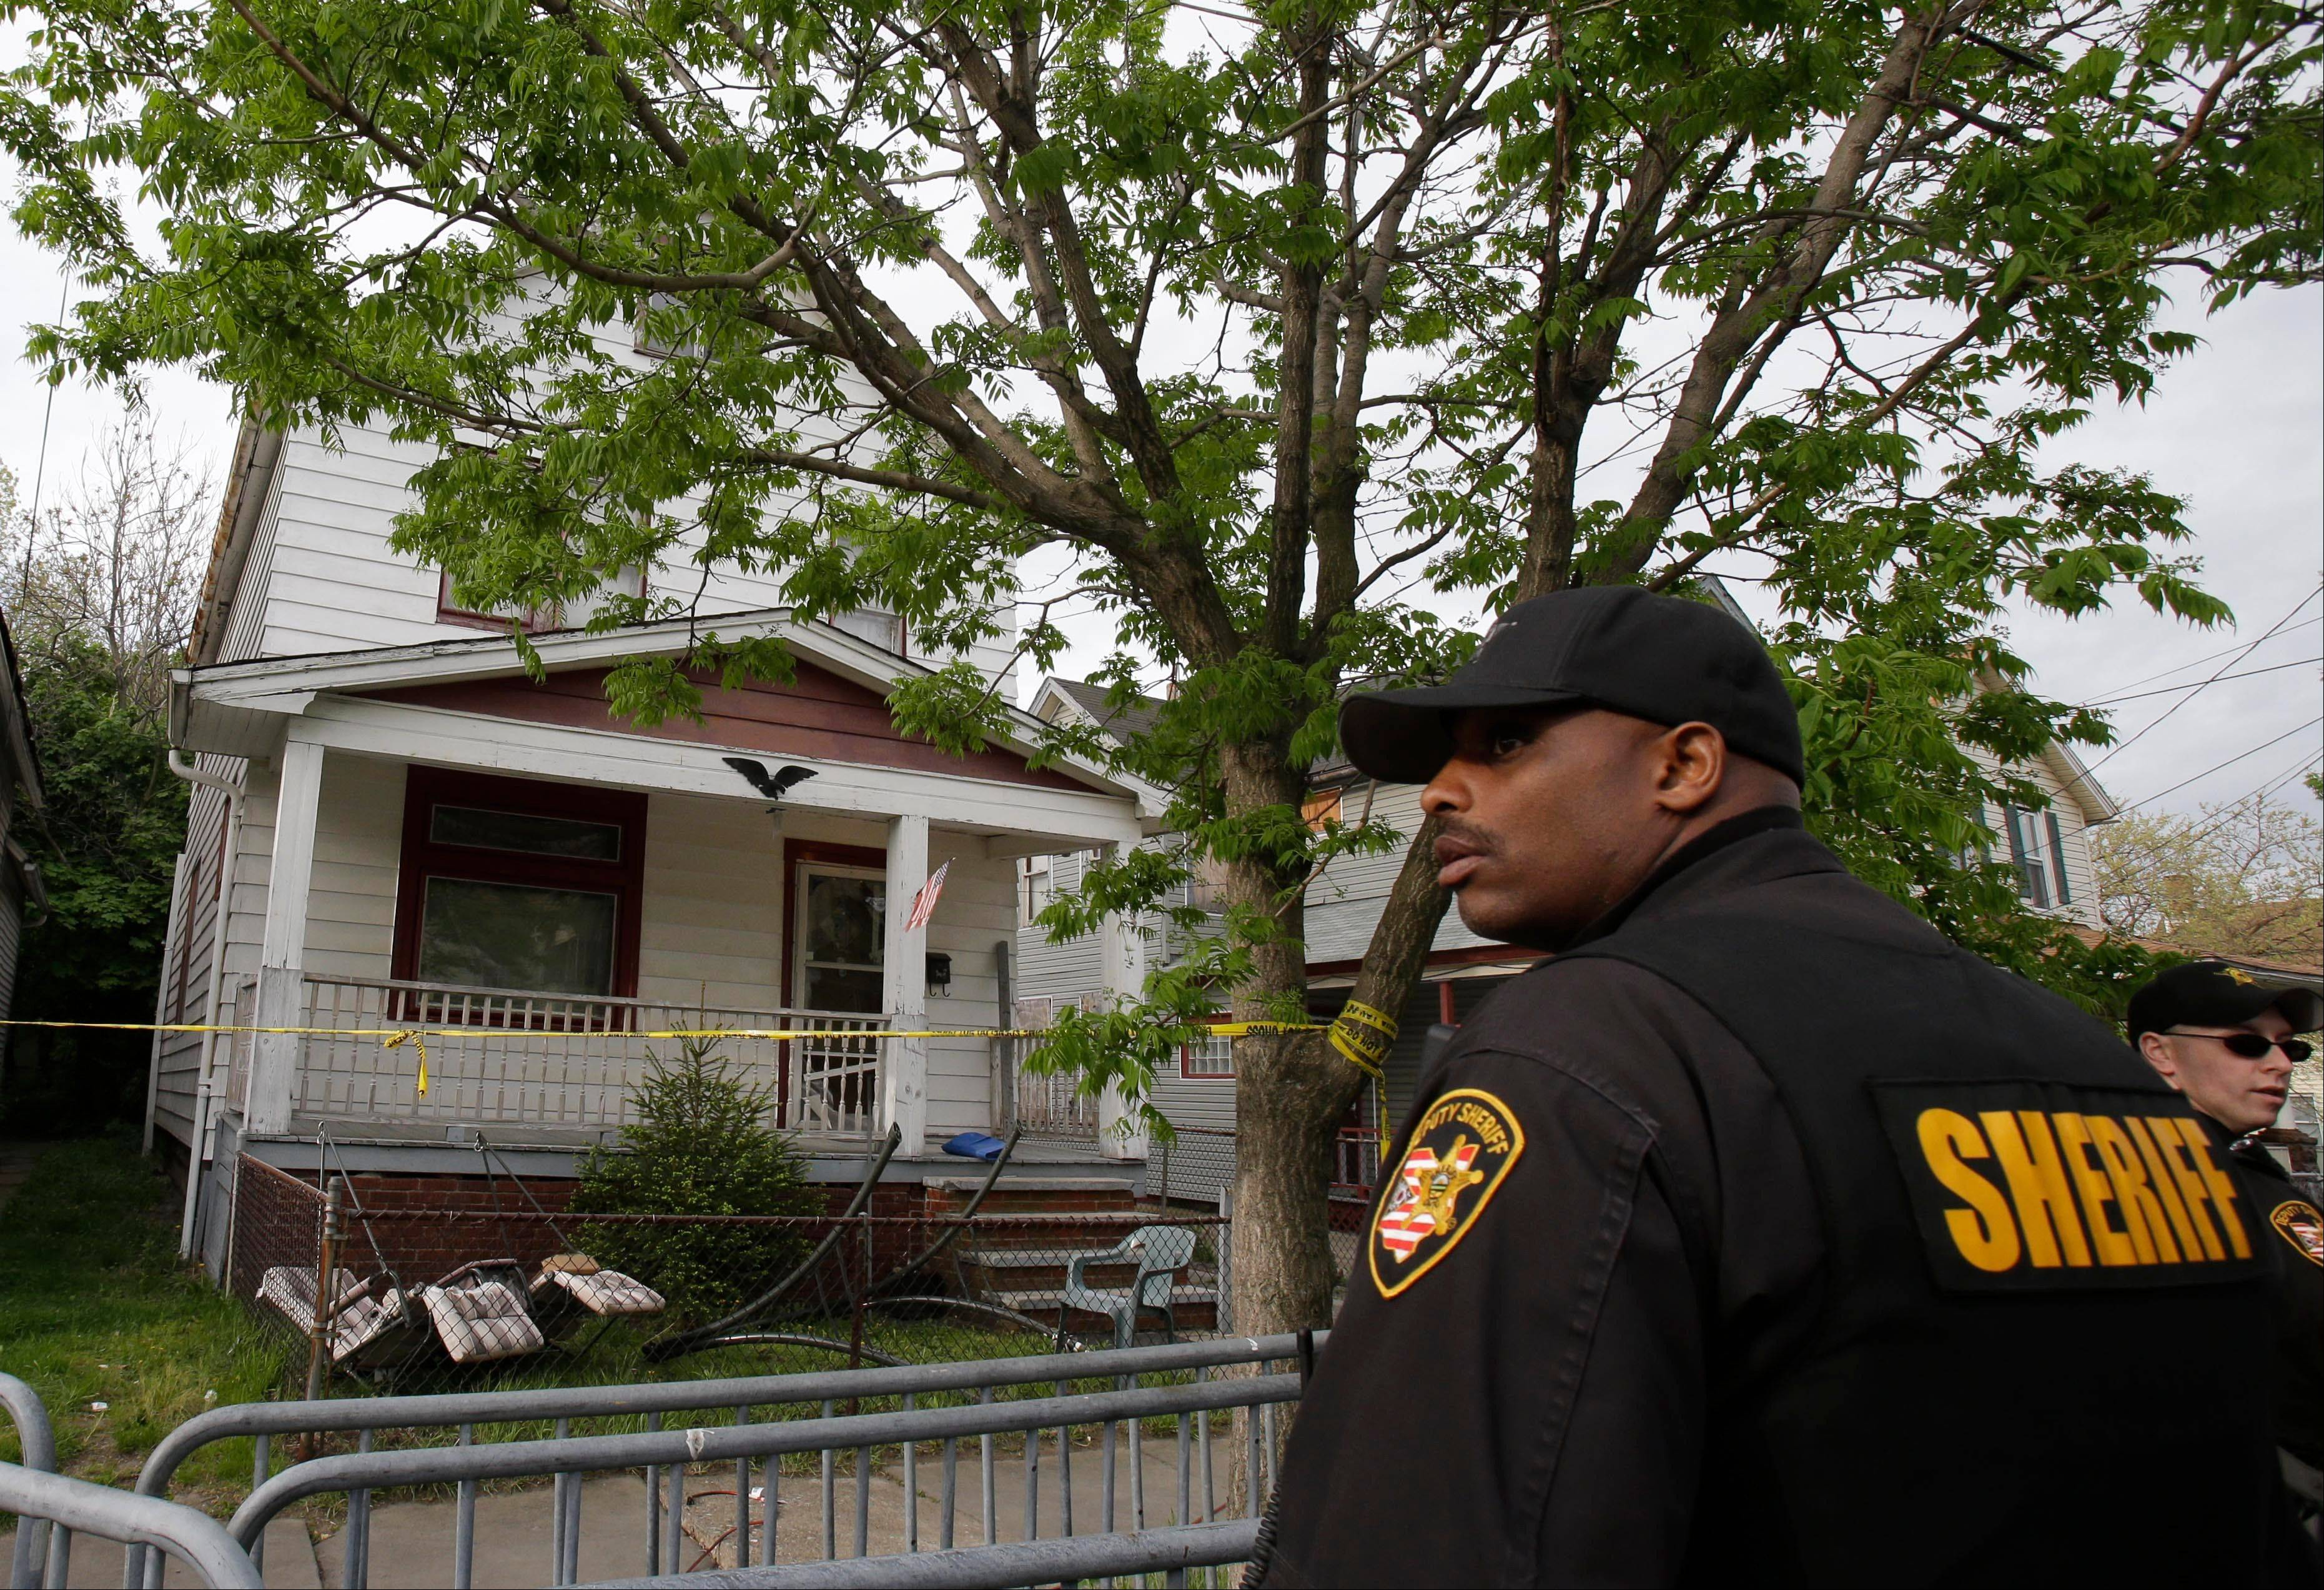 A sheriff's deputy stands outside a house where three women escaped Tuesday, May 7, 2013, in Cleveland. Three women who went missing separately about a decade ago were found in the home Monday just south of downtown and likely had been tied up during years of captivity, said police, who arrested three brothers.